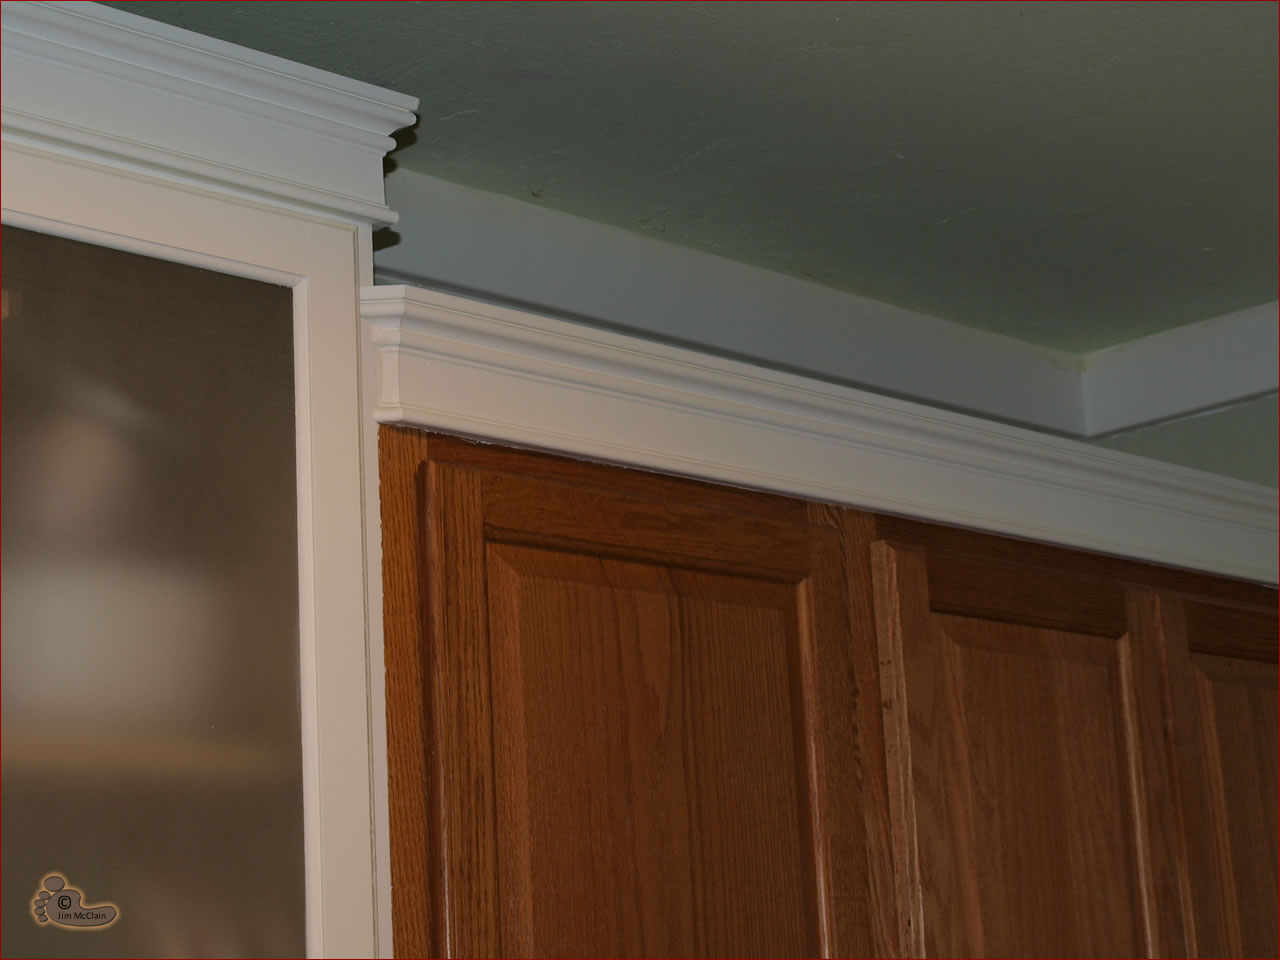 superb How To Put Crown Molding On Kitchen Cabinets #5: ... Adding Crown Molding on Kitchen Cabinets-kitchen-cabinet-cornice2.jpg